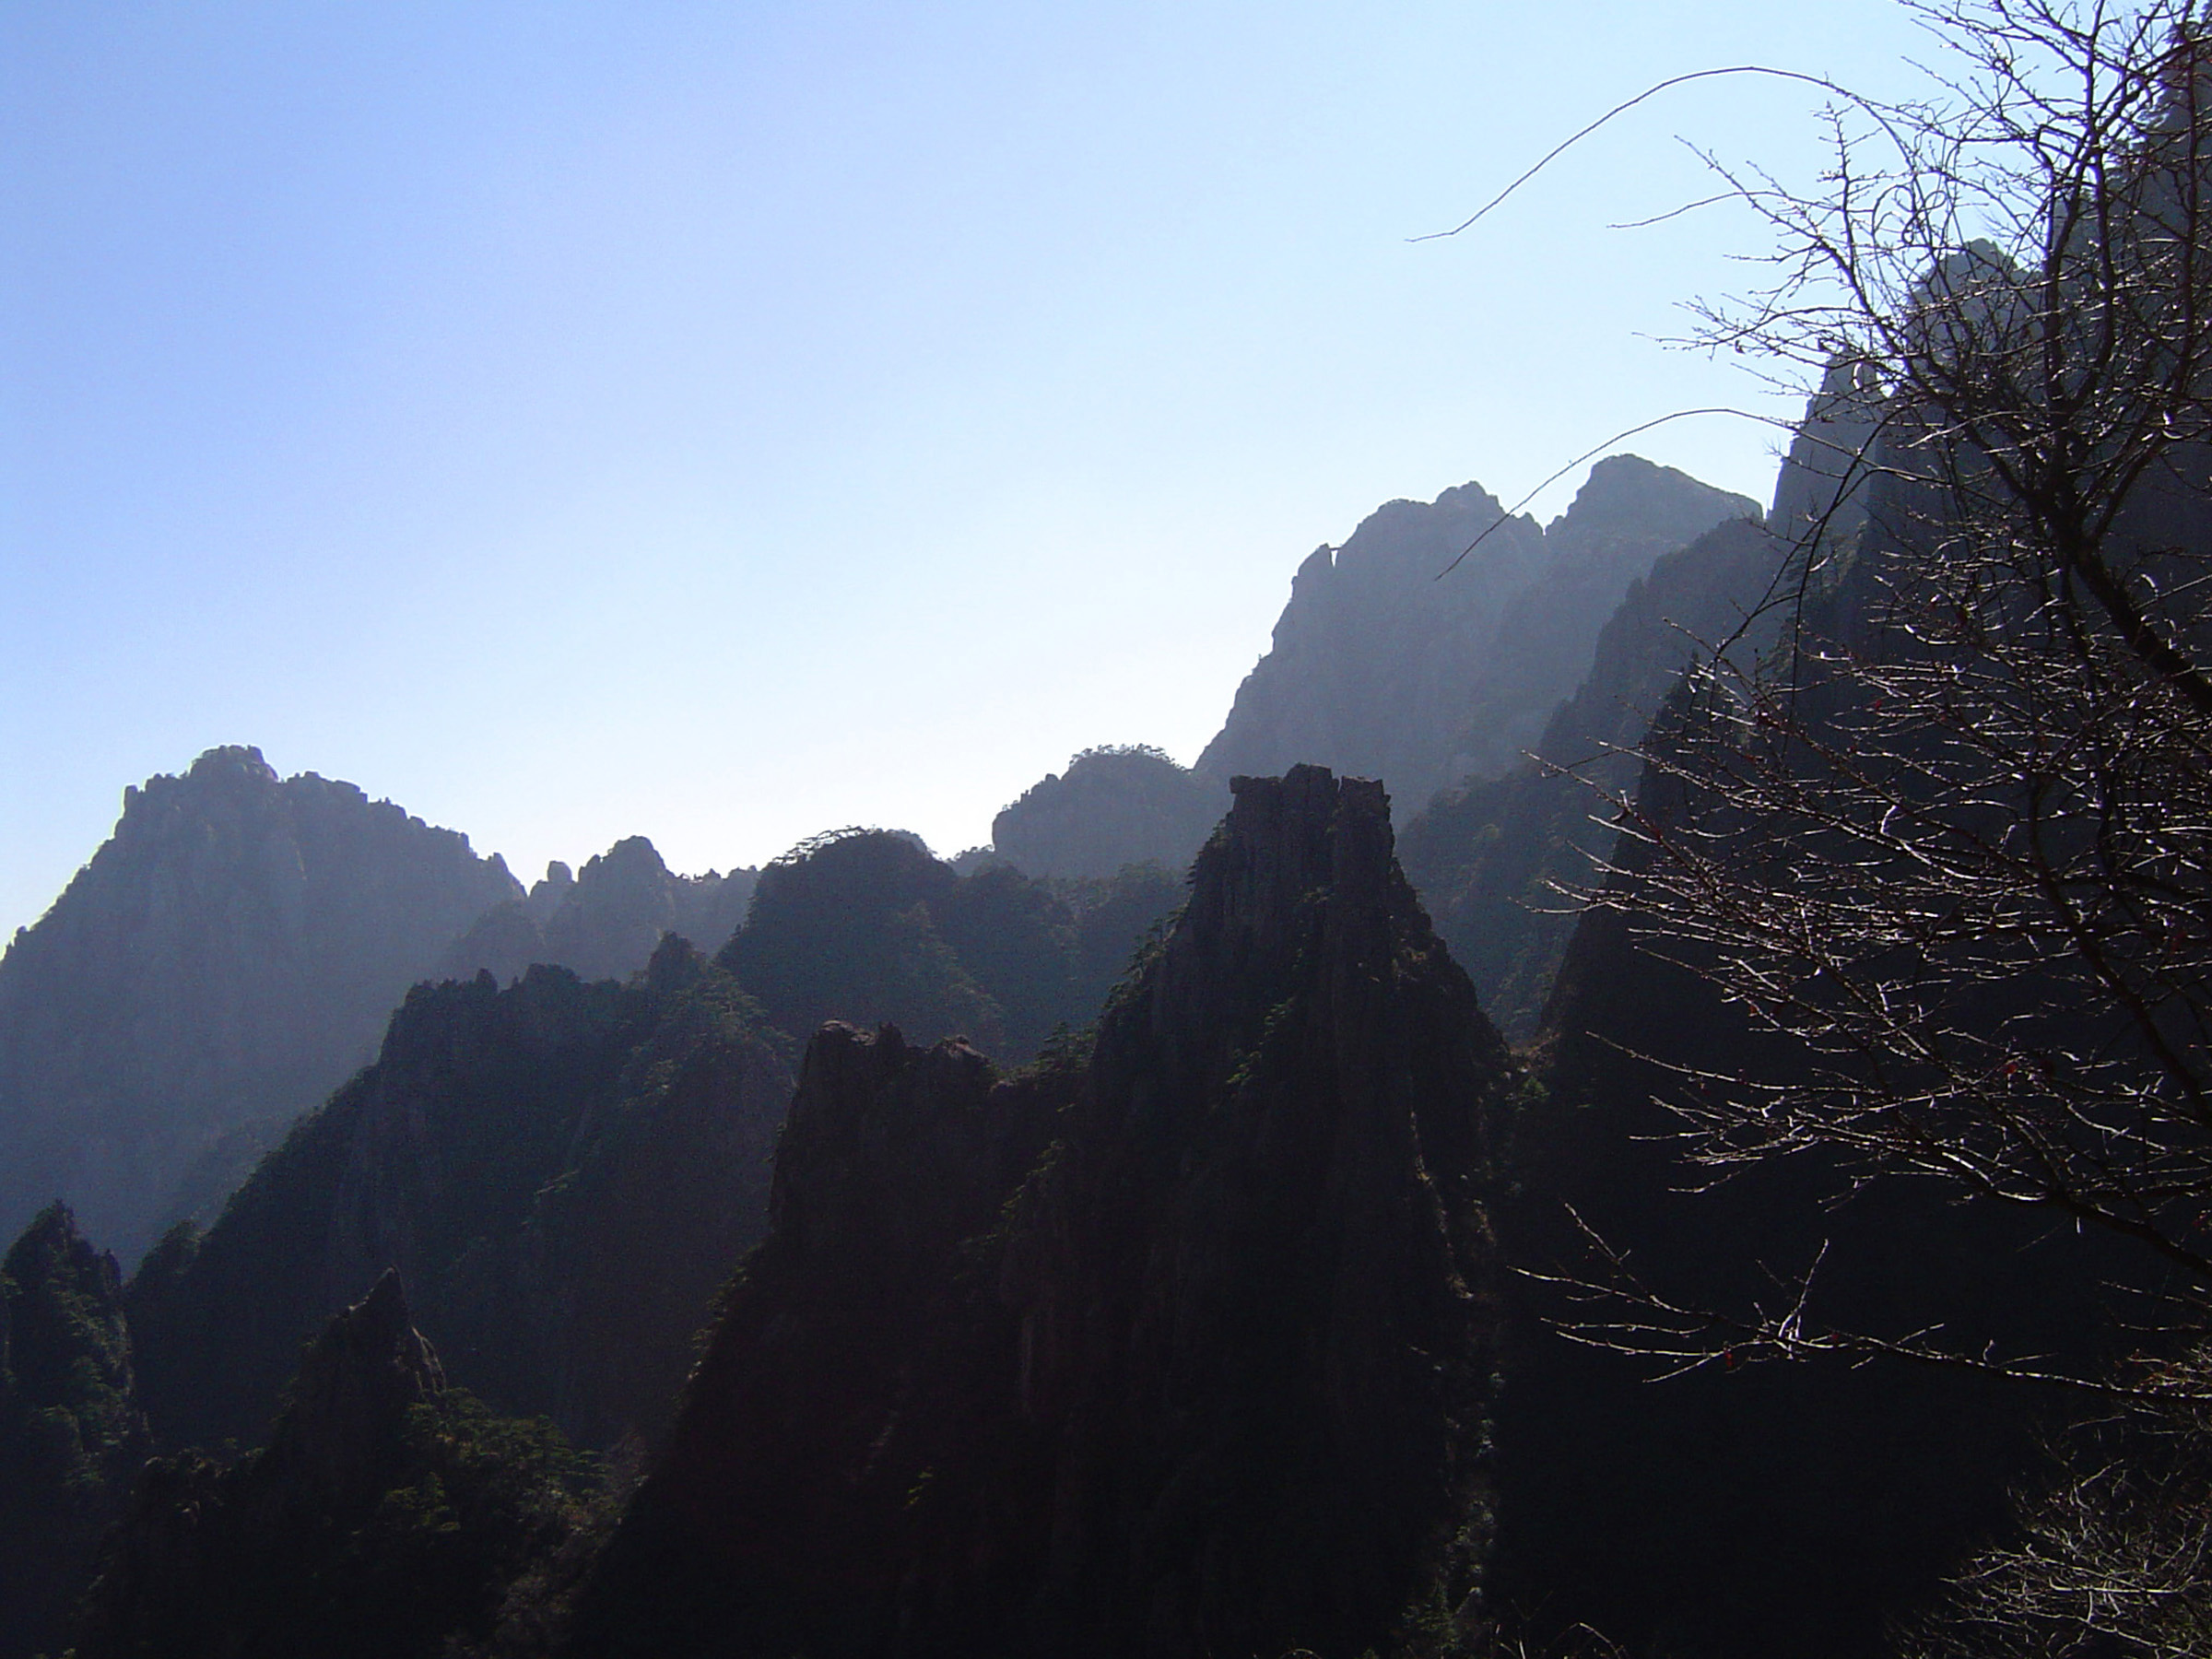 Free Stock photo of Huangshan Yellow Mountain Range in ...